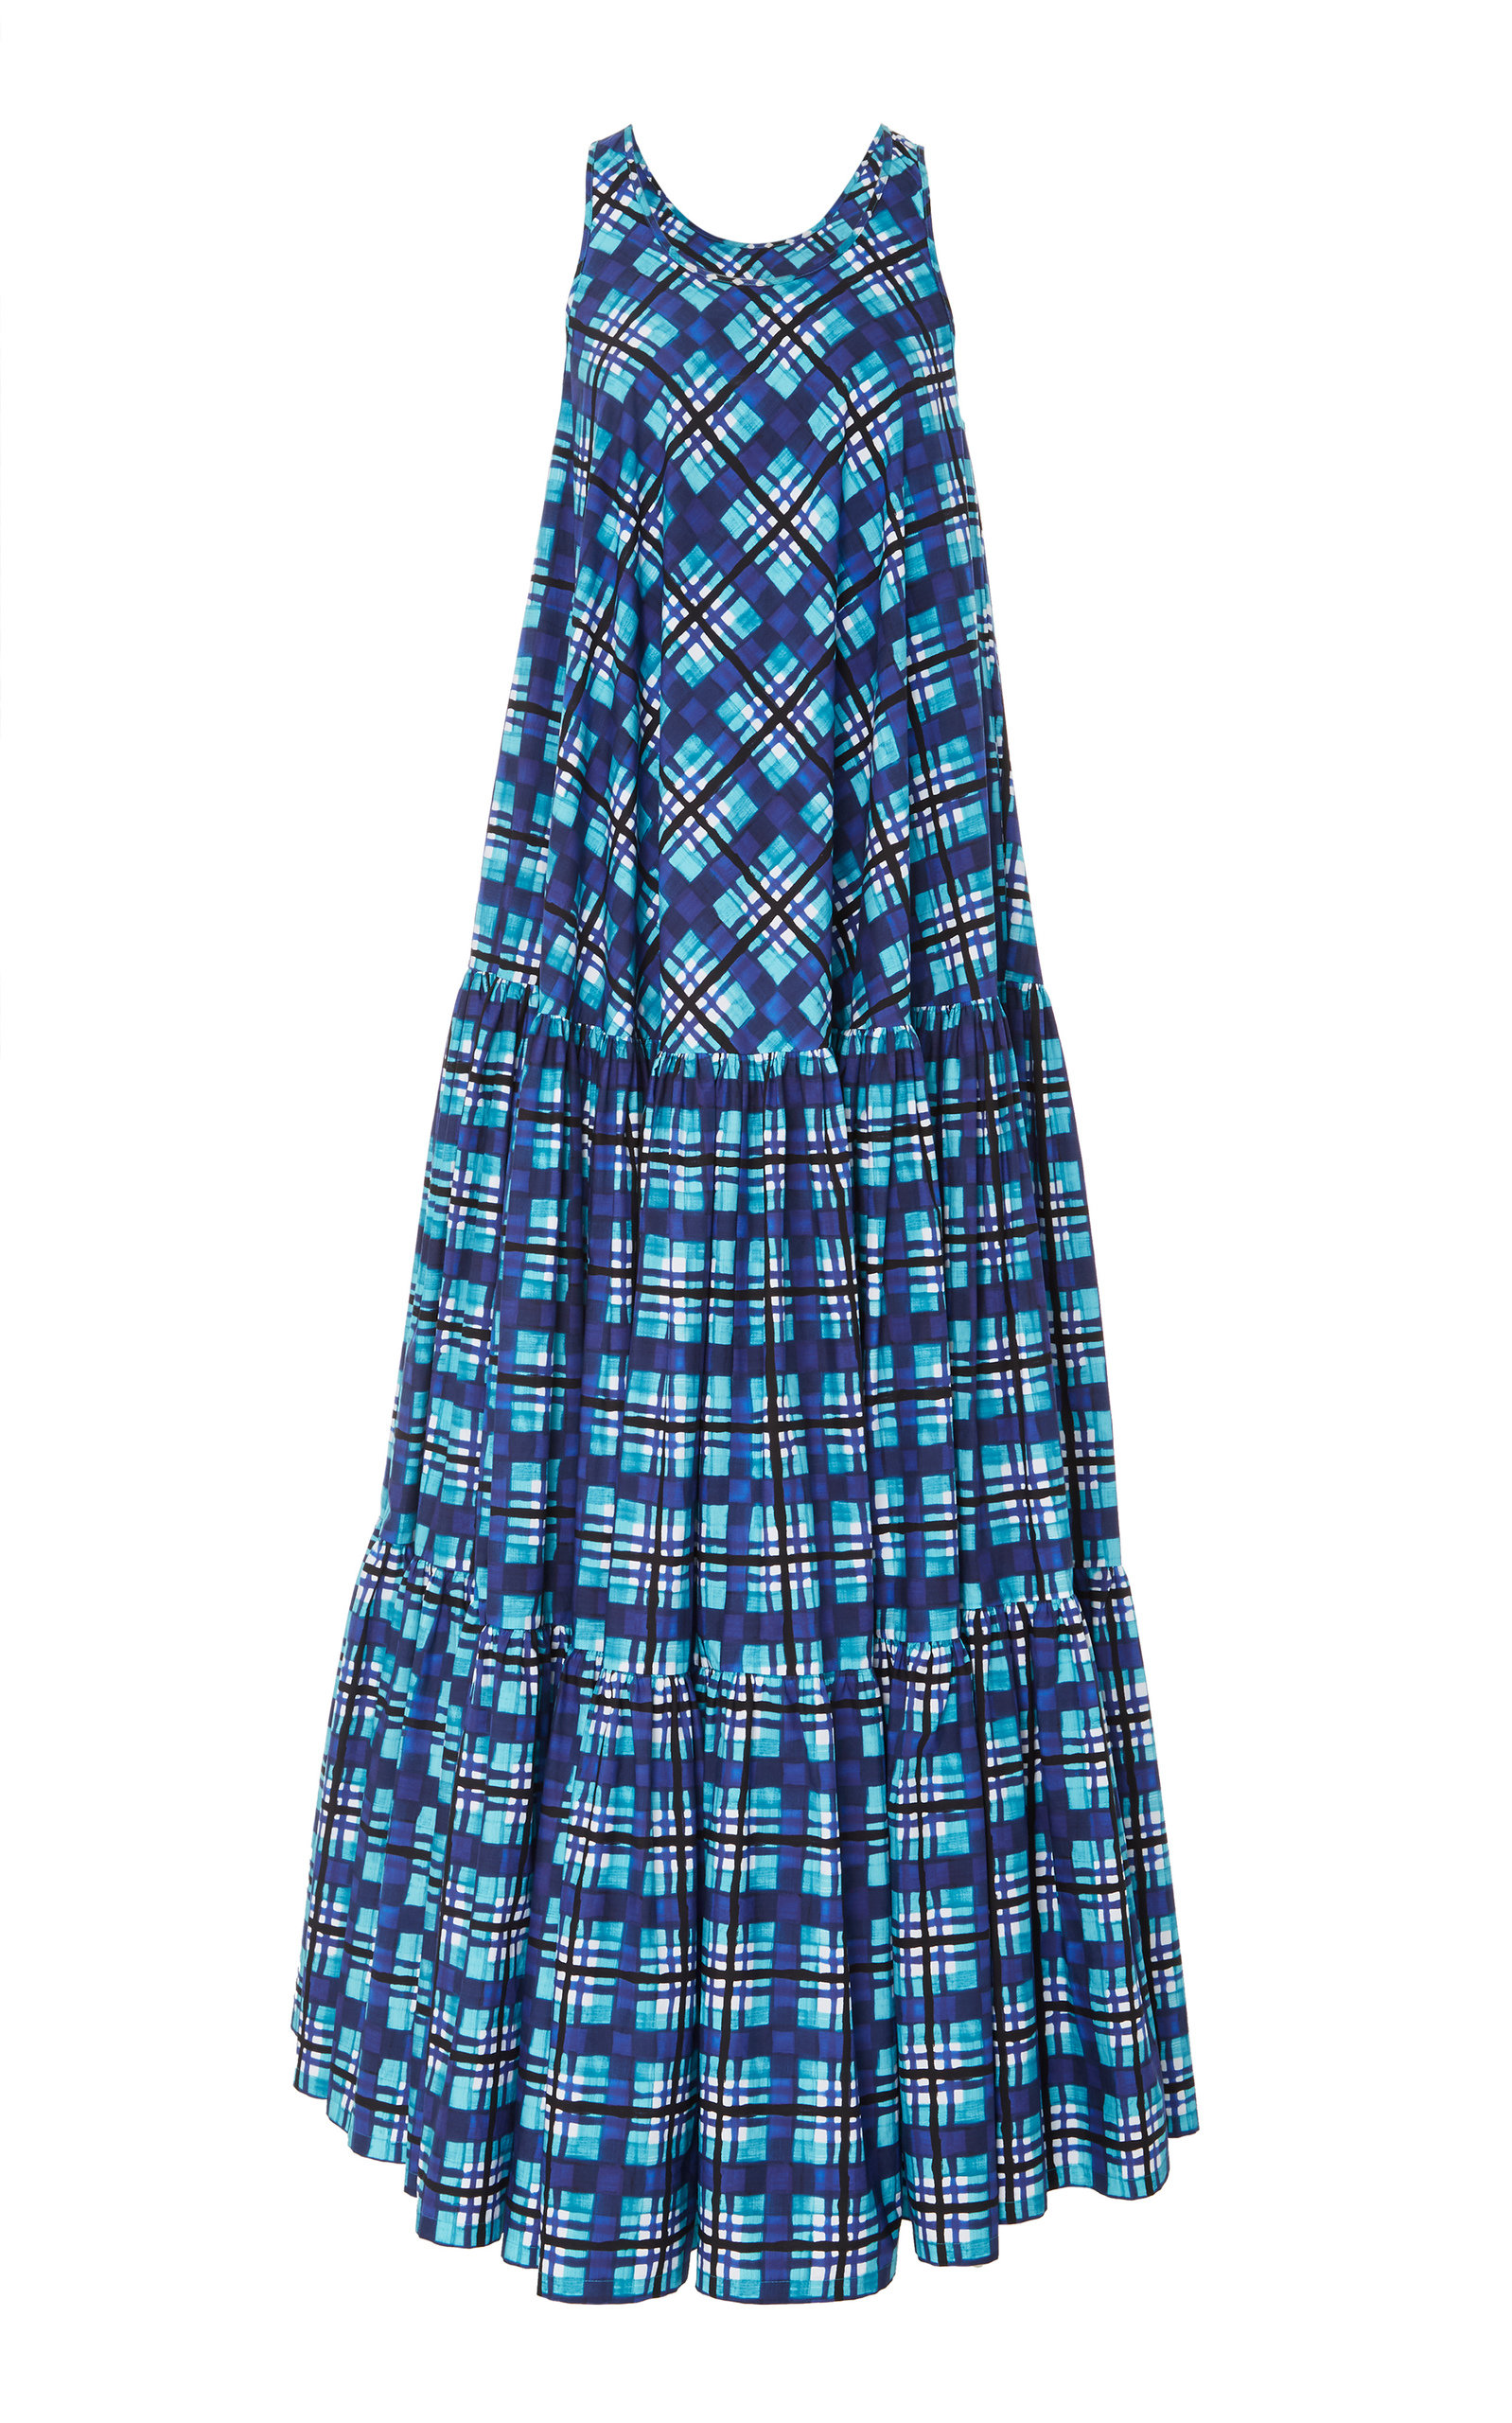 Plaid Trapeze Dress Michael Kors KjRJSTPV4i